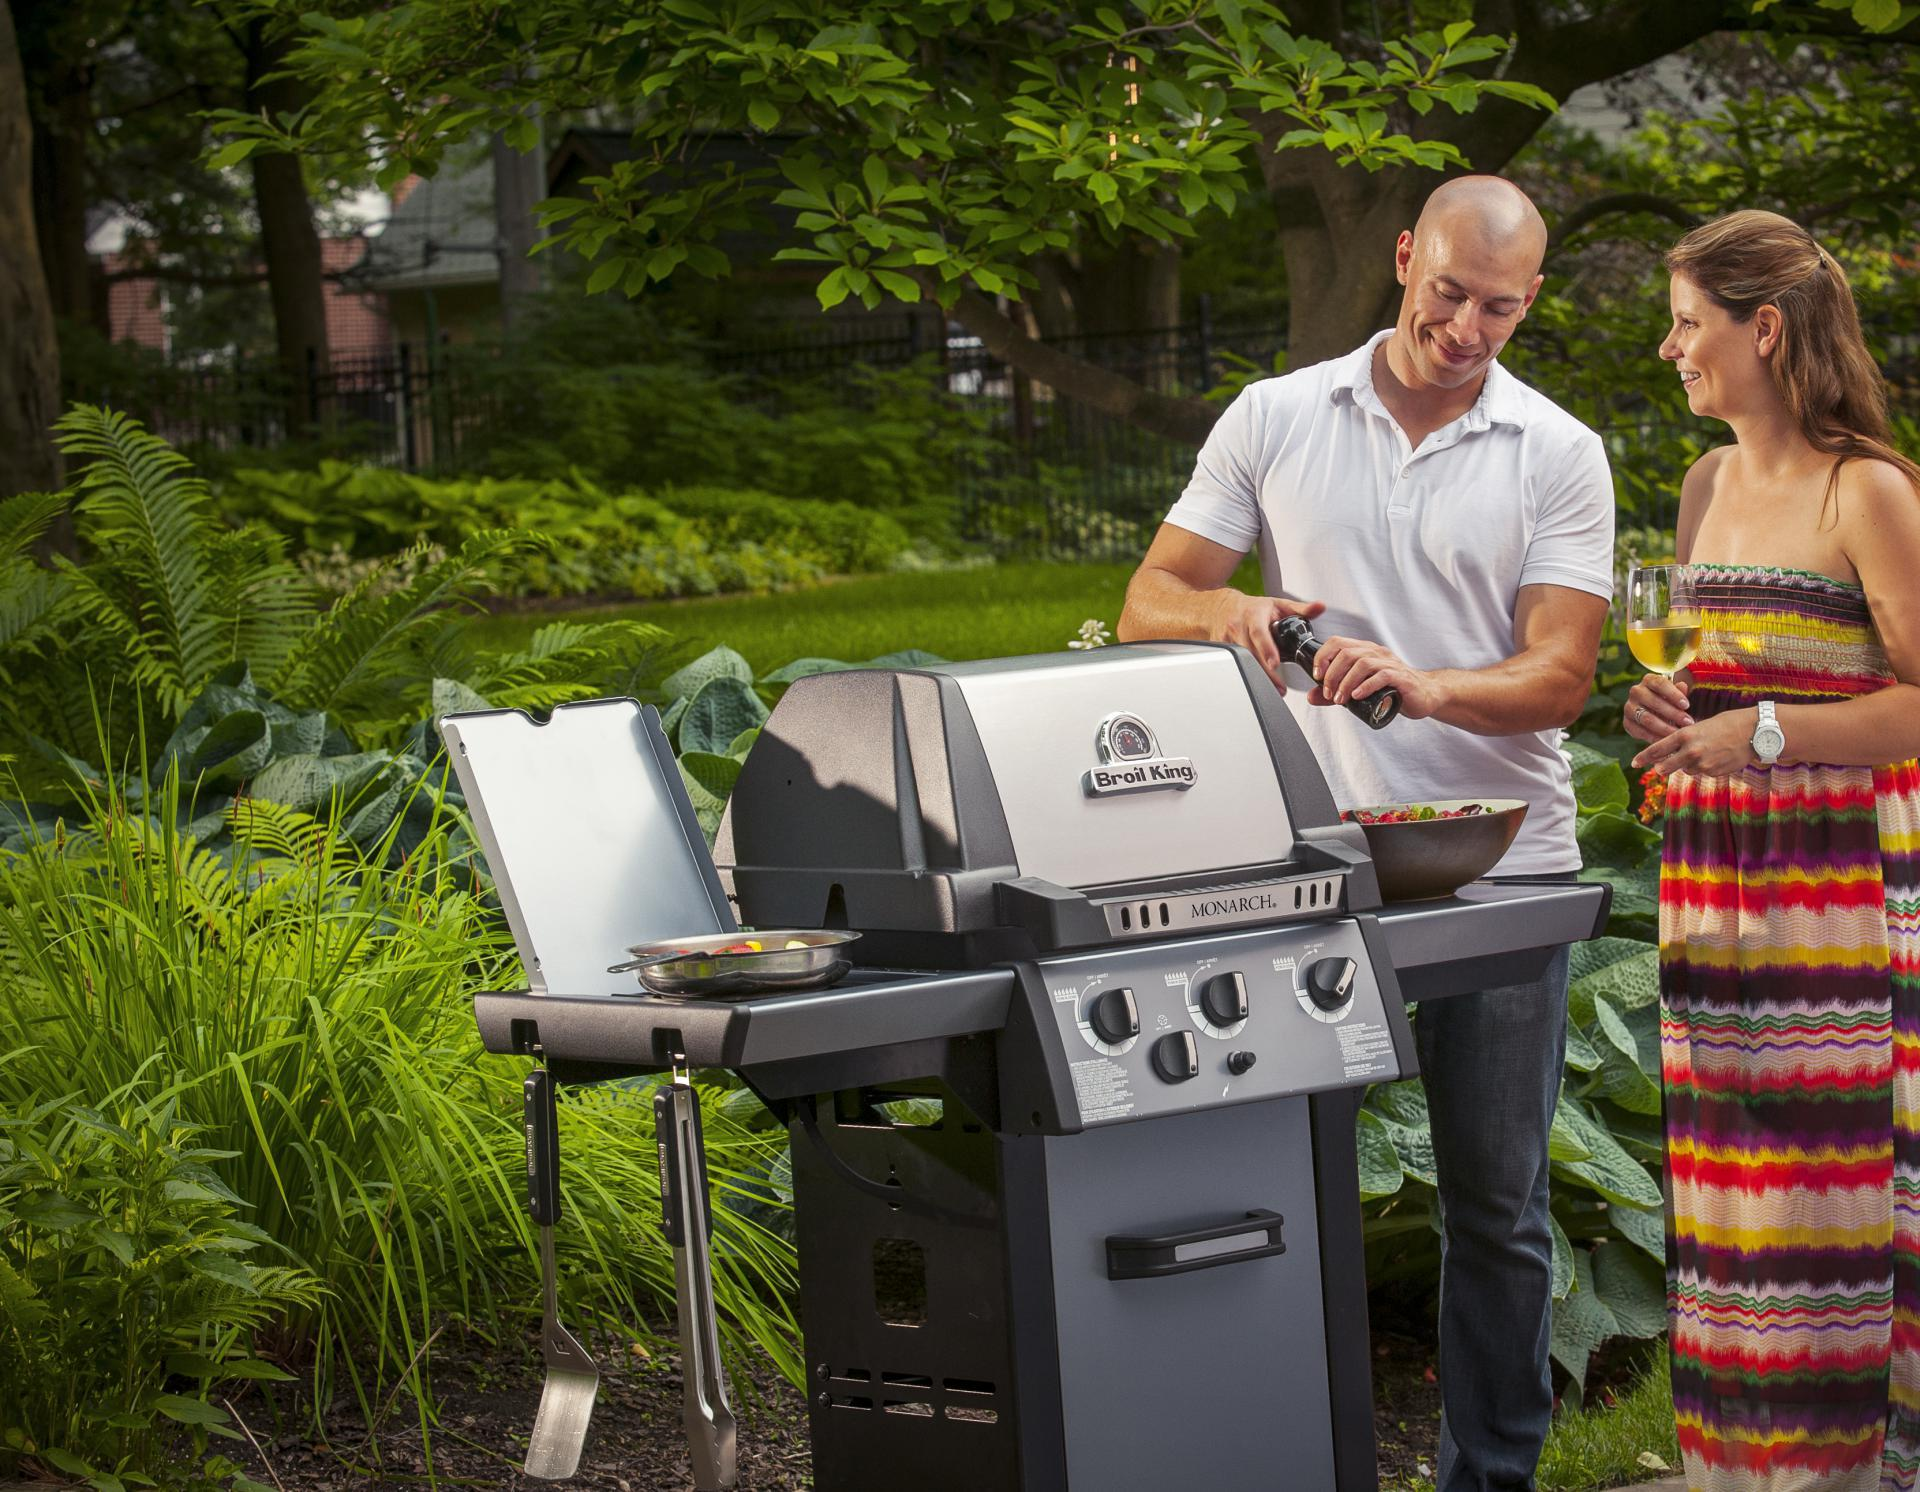 Broil King gasbarbecue